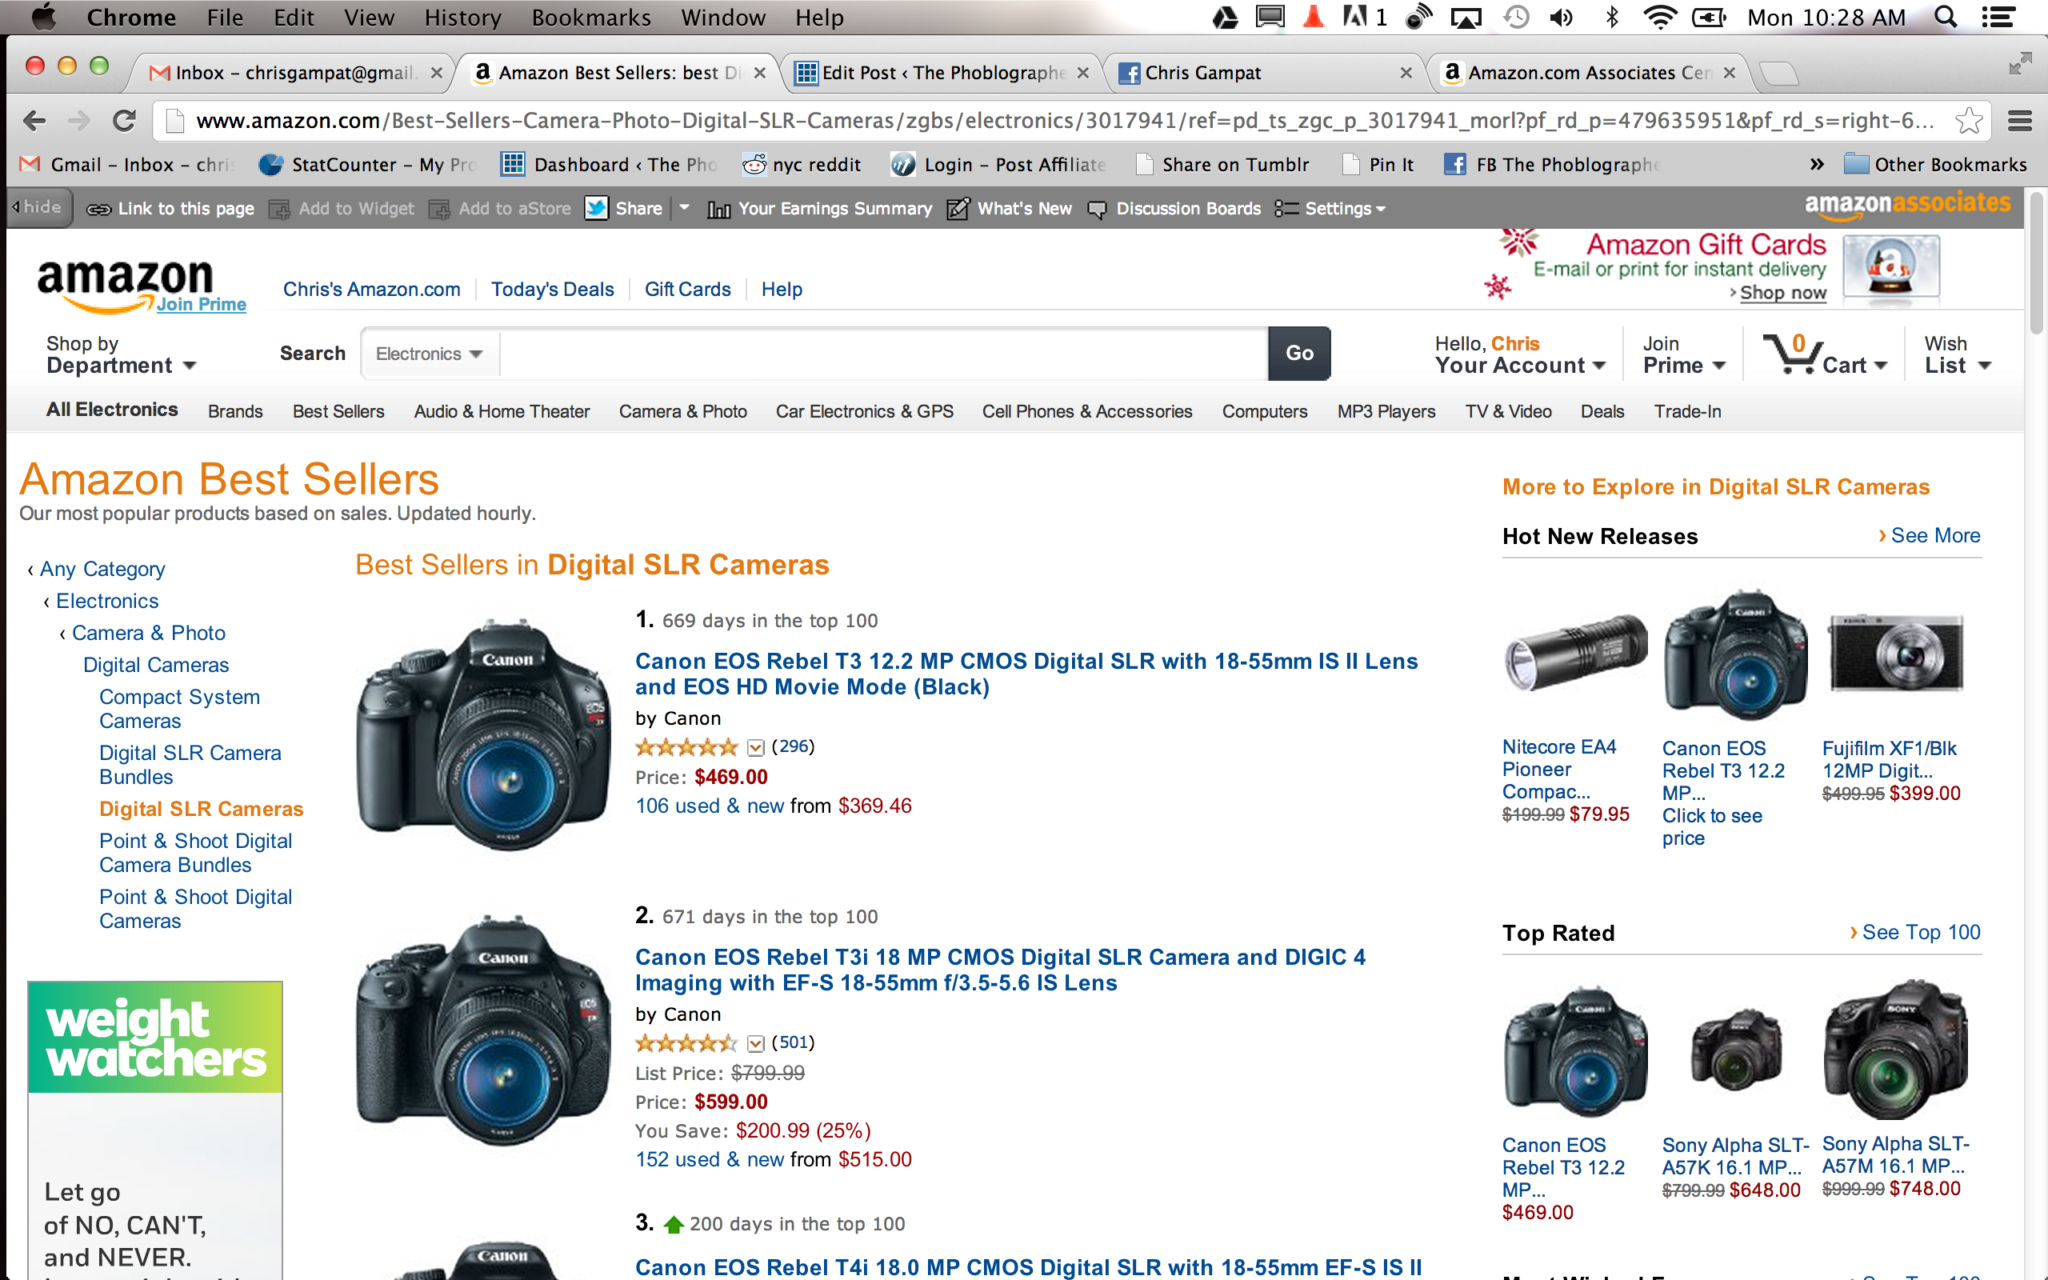 Cheap Photo: Take a Guess at What Amazon's Top Selling DSLRs Are?